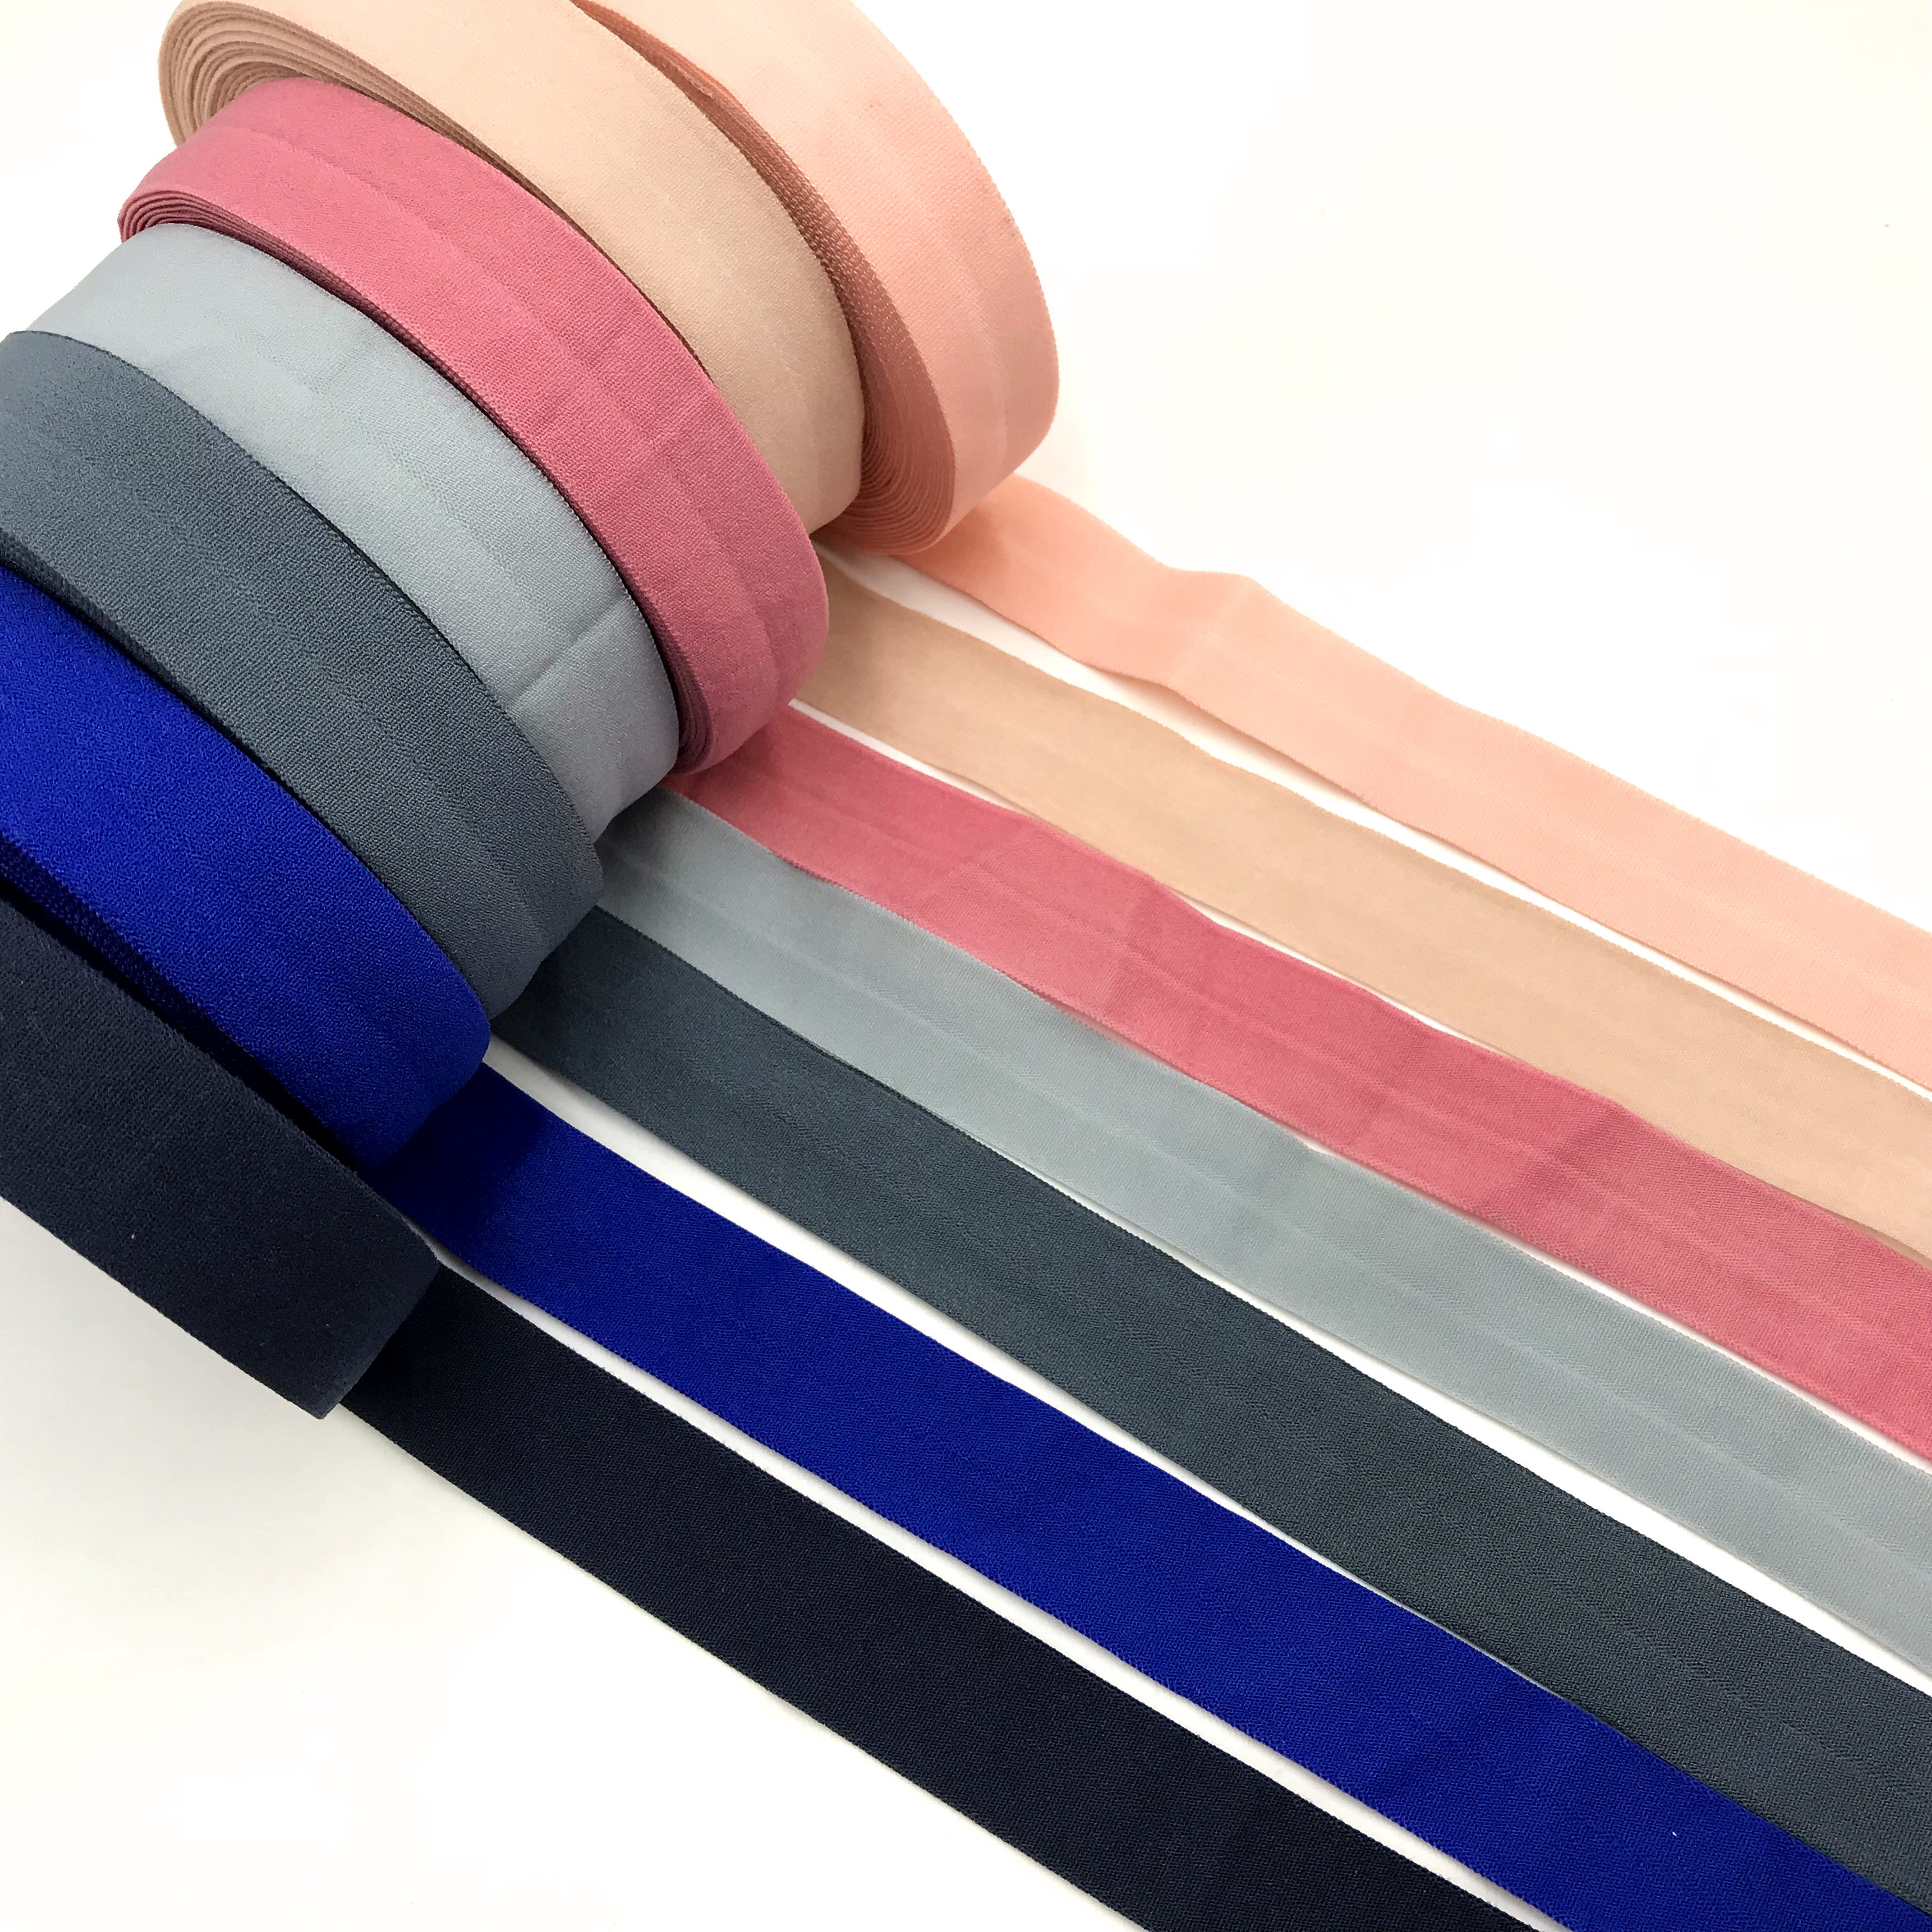 20mm Folded Elastic Band Over Elastic Spandex Satin Band Ties Hair Accessories Sewing Lace Trim Ribbon Adjustable Elastics 10Y